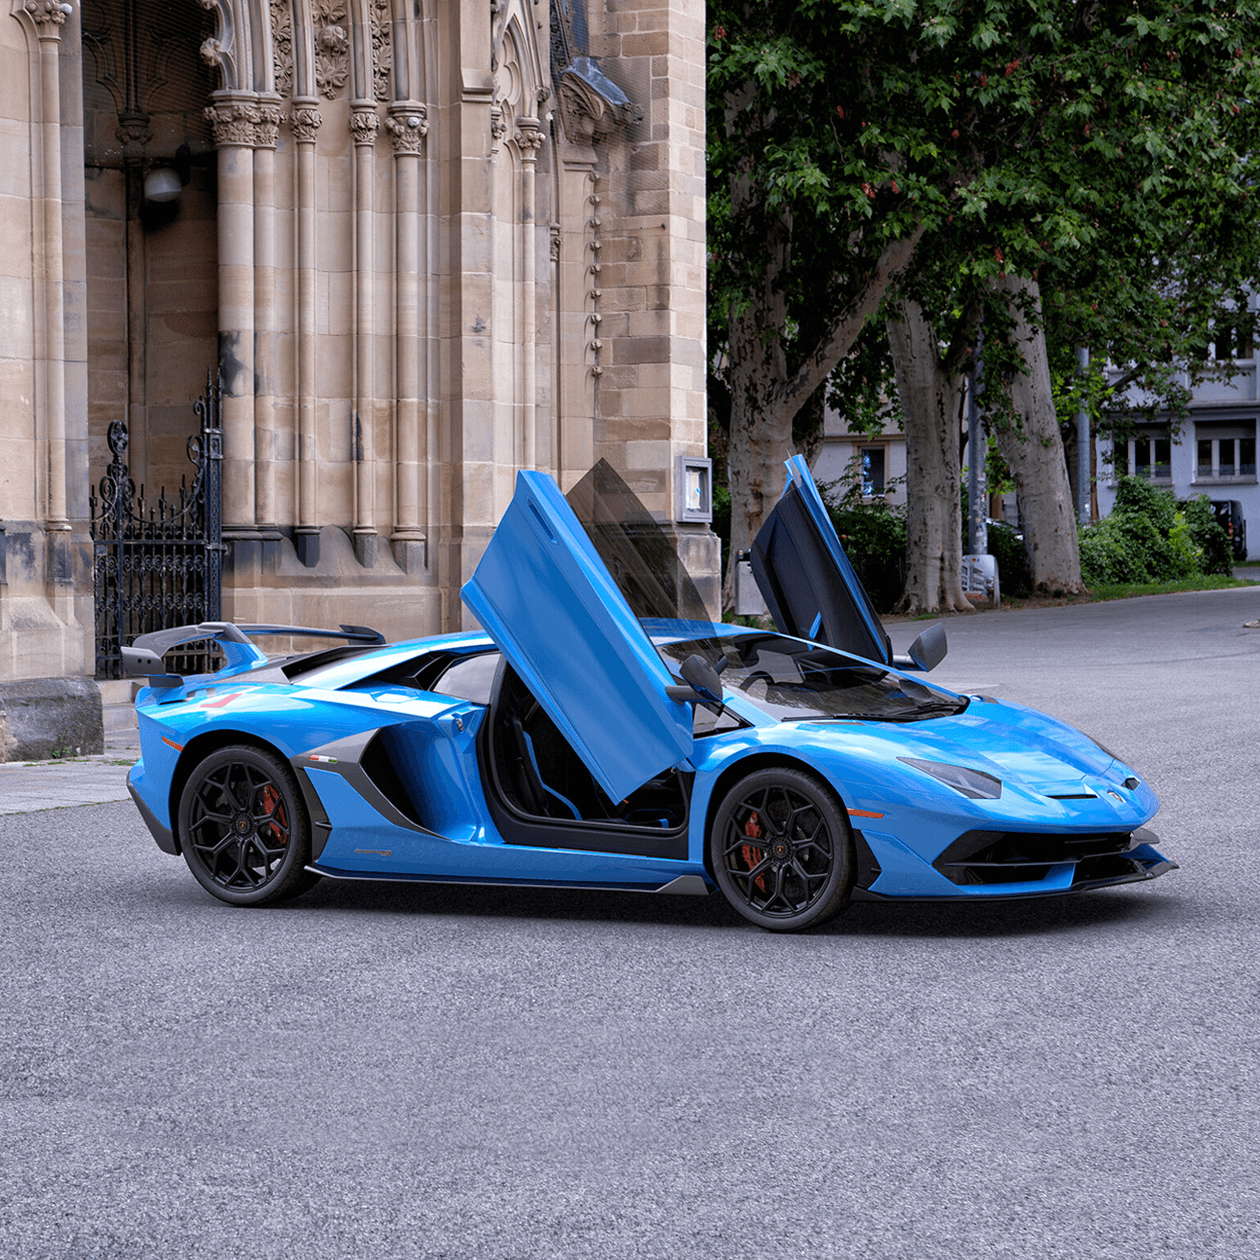 A render of a Lamborghini in Blue with the doors open outside a church